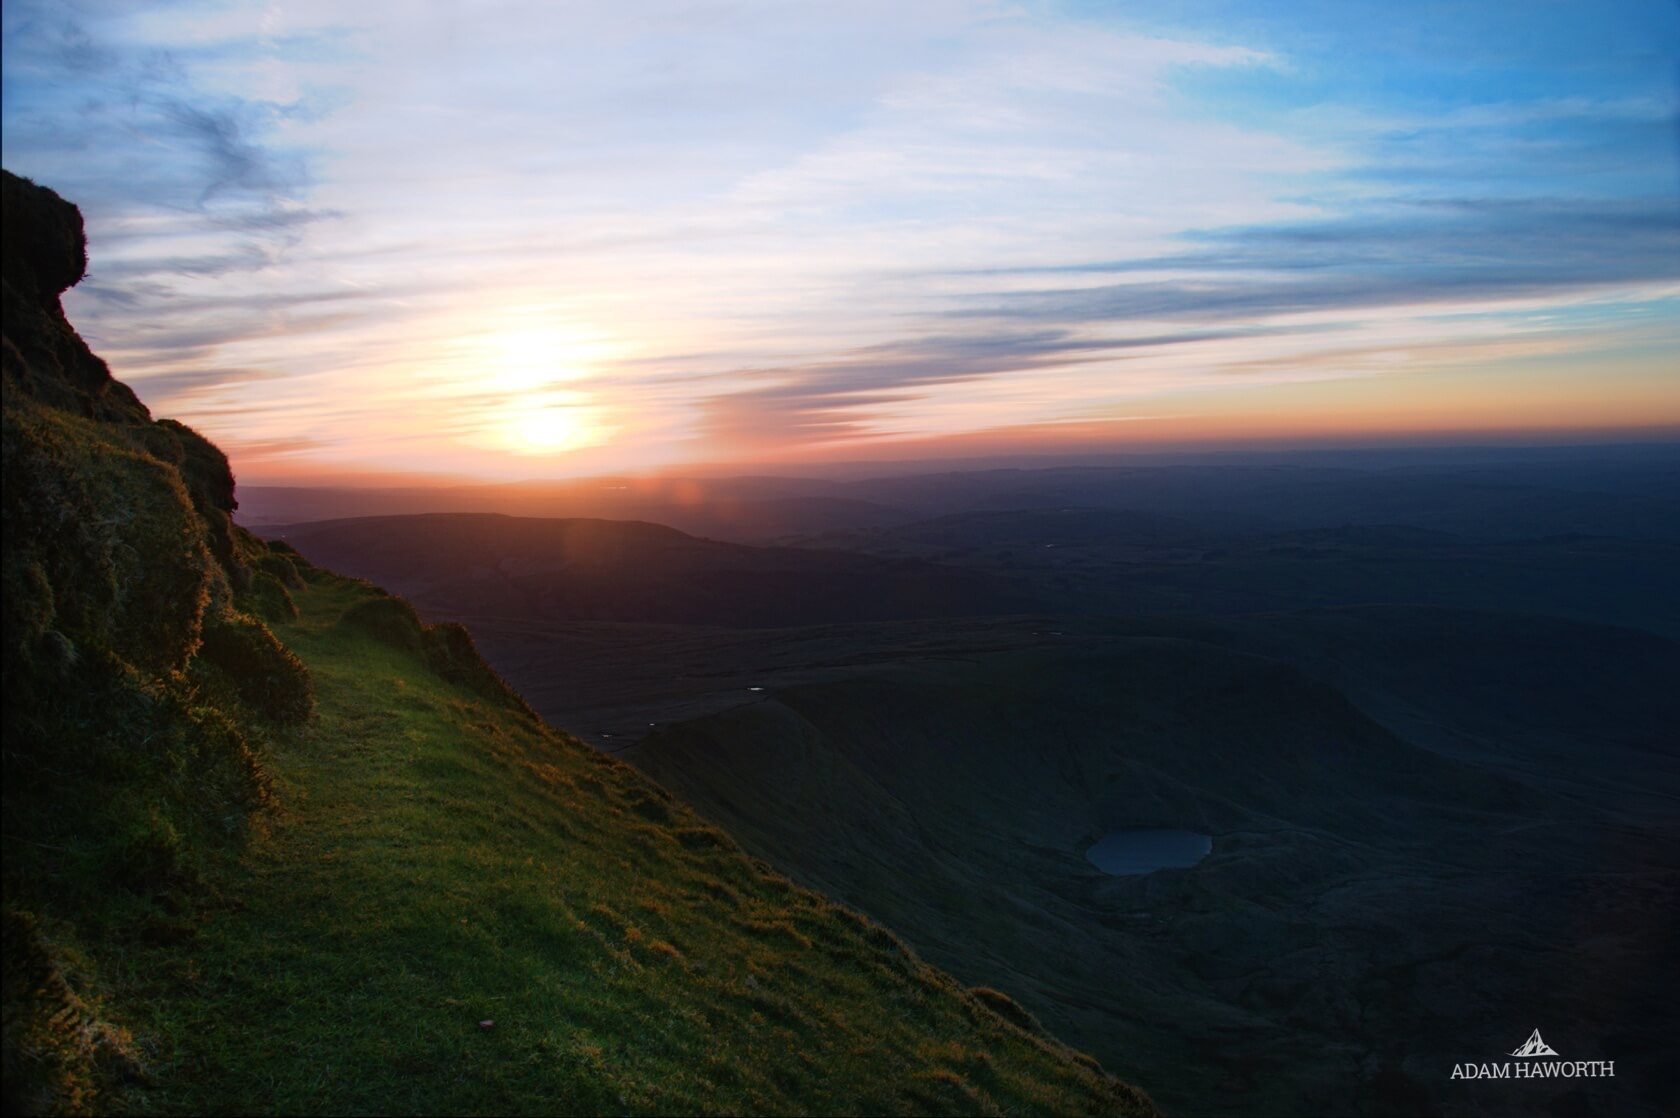 Sunset from Cribyn and Pen y Fan, Brecon Beacons